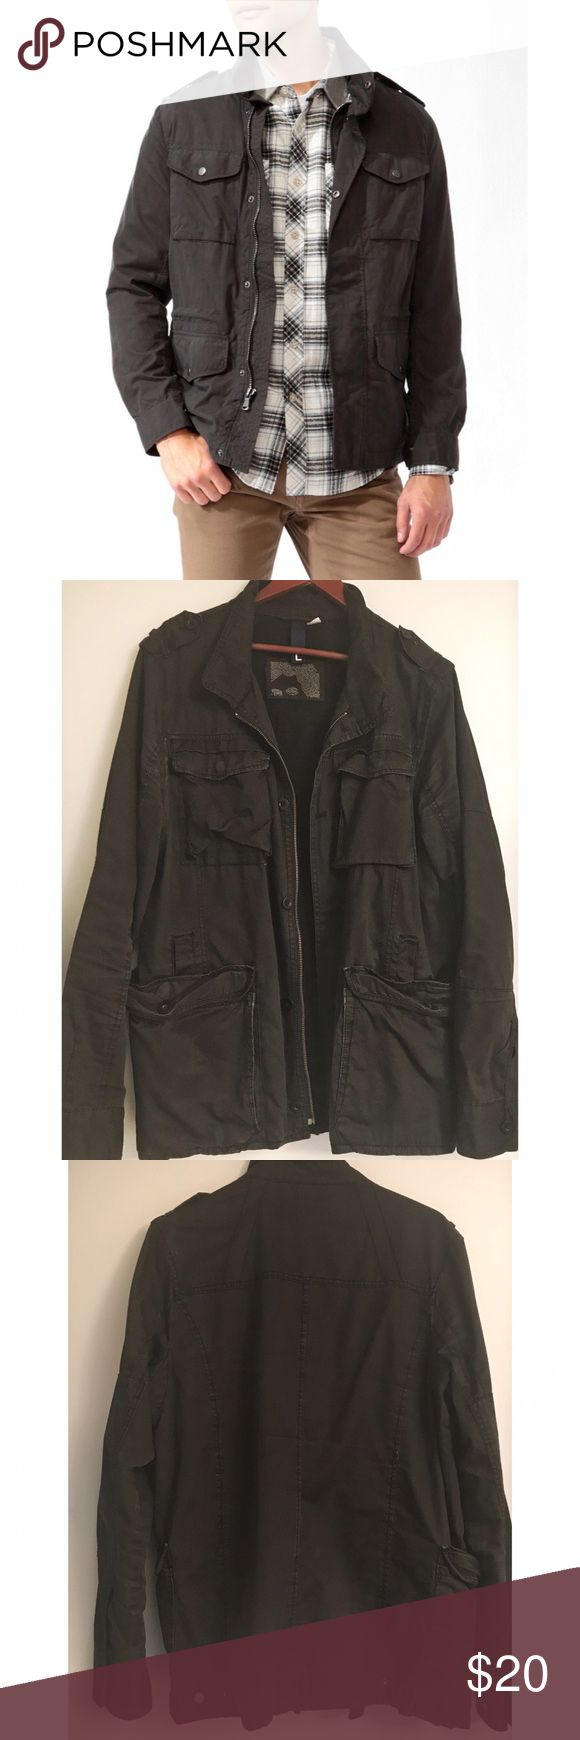 H&M Men's Black Utility Jacket Awesome jacket with a semi-distressed look. H&M Jackets & Coats Utility Jackets